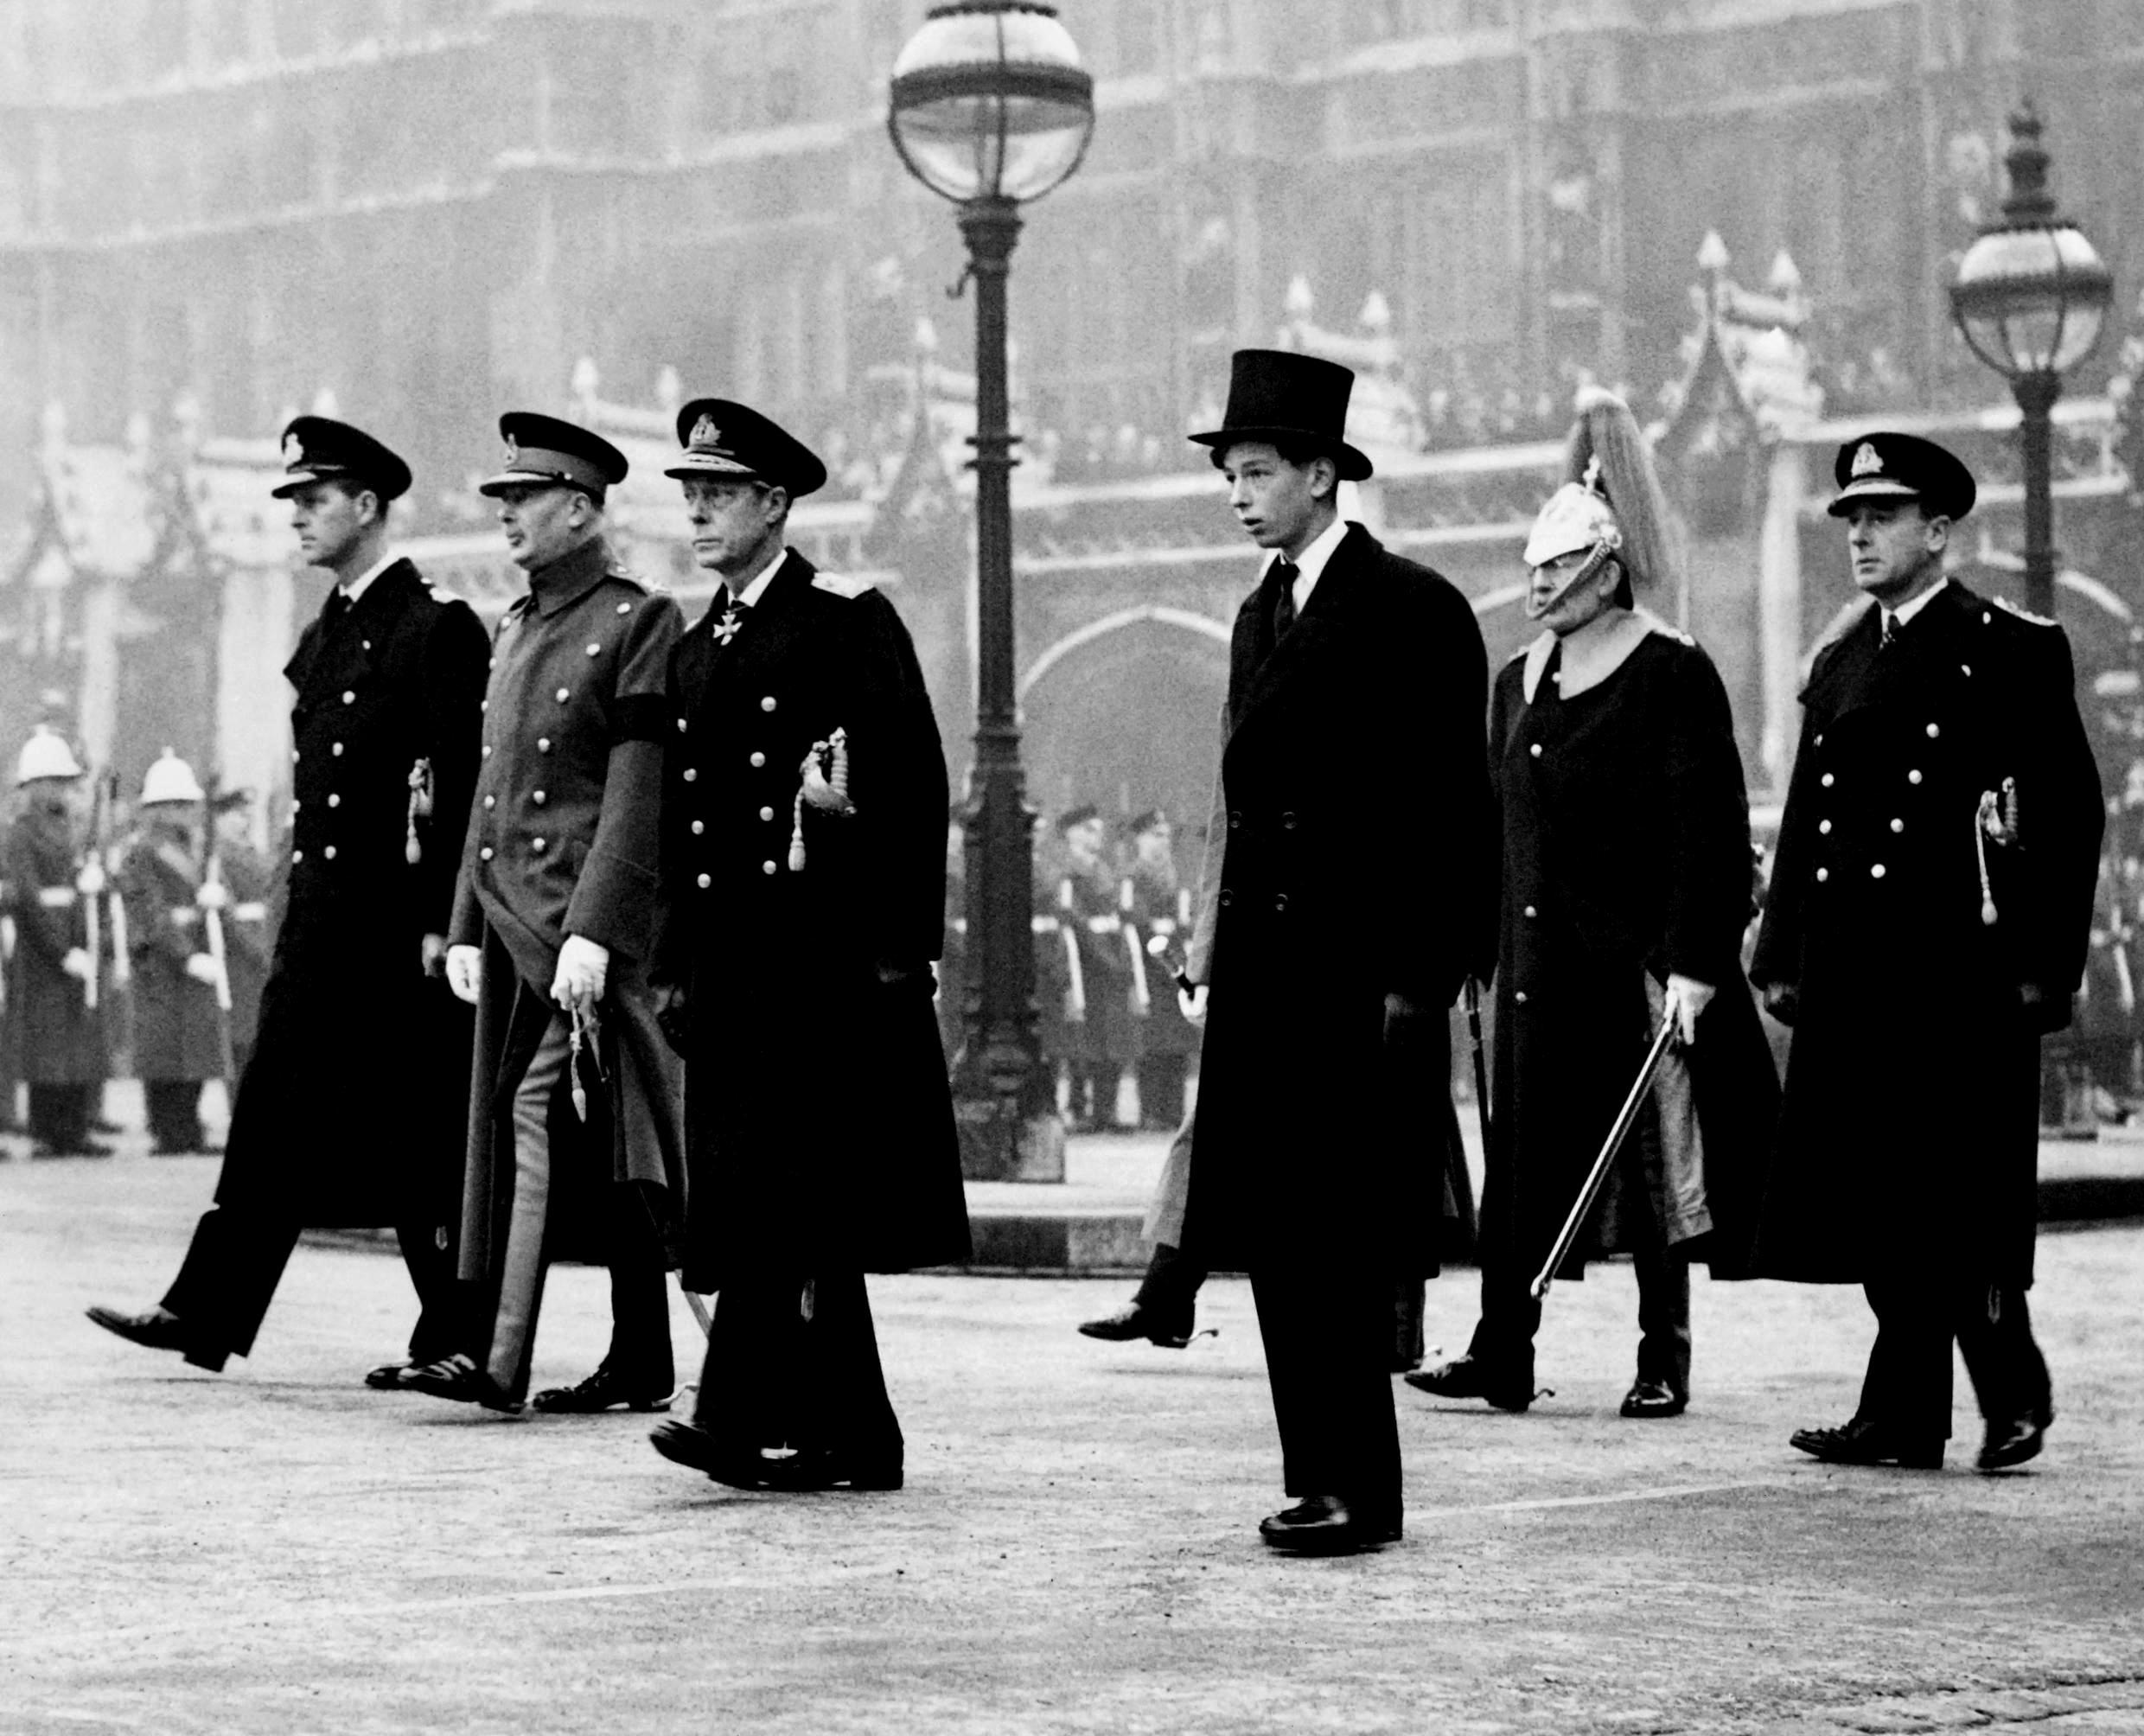 The four Royal Dukes -- the Duke of Kent, the Duke of Windsor, the Duke of Gloucester and the Duke of Edinburgh -- march behind the Royal coffin as the King's George VI  funeral procession begins in New Palace Yard outside Westminer Hall in London on February 15, 1952.